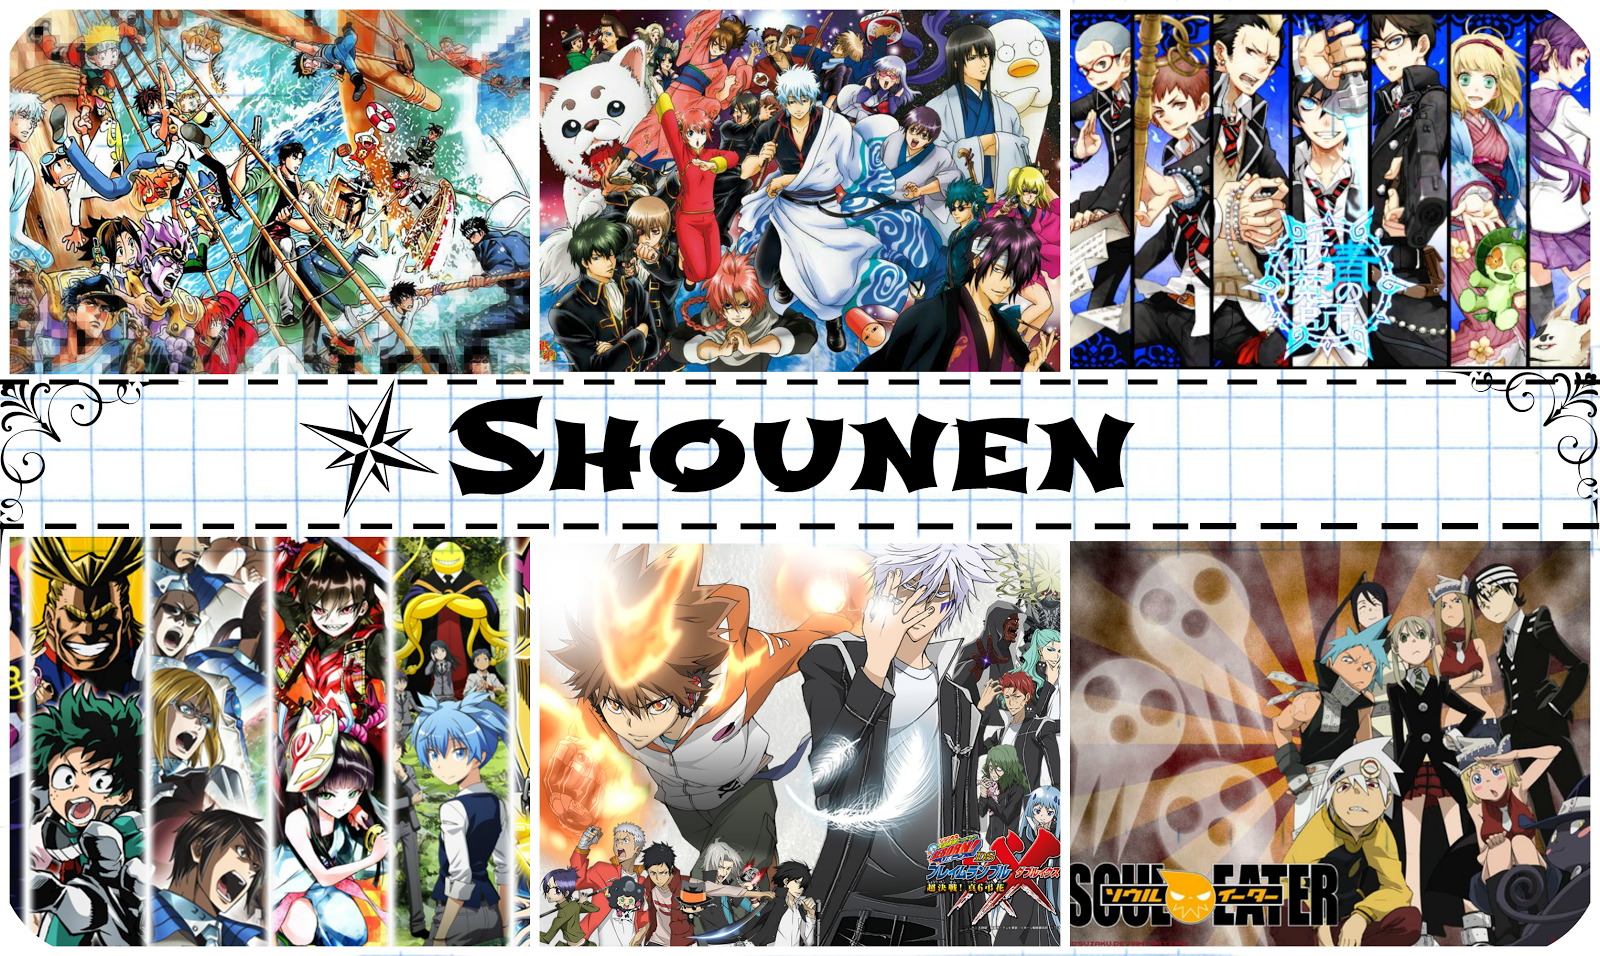 The meaning of shounen